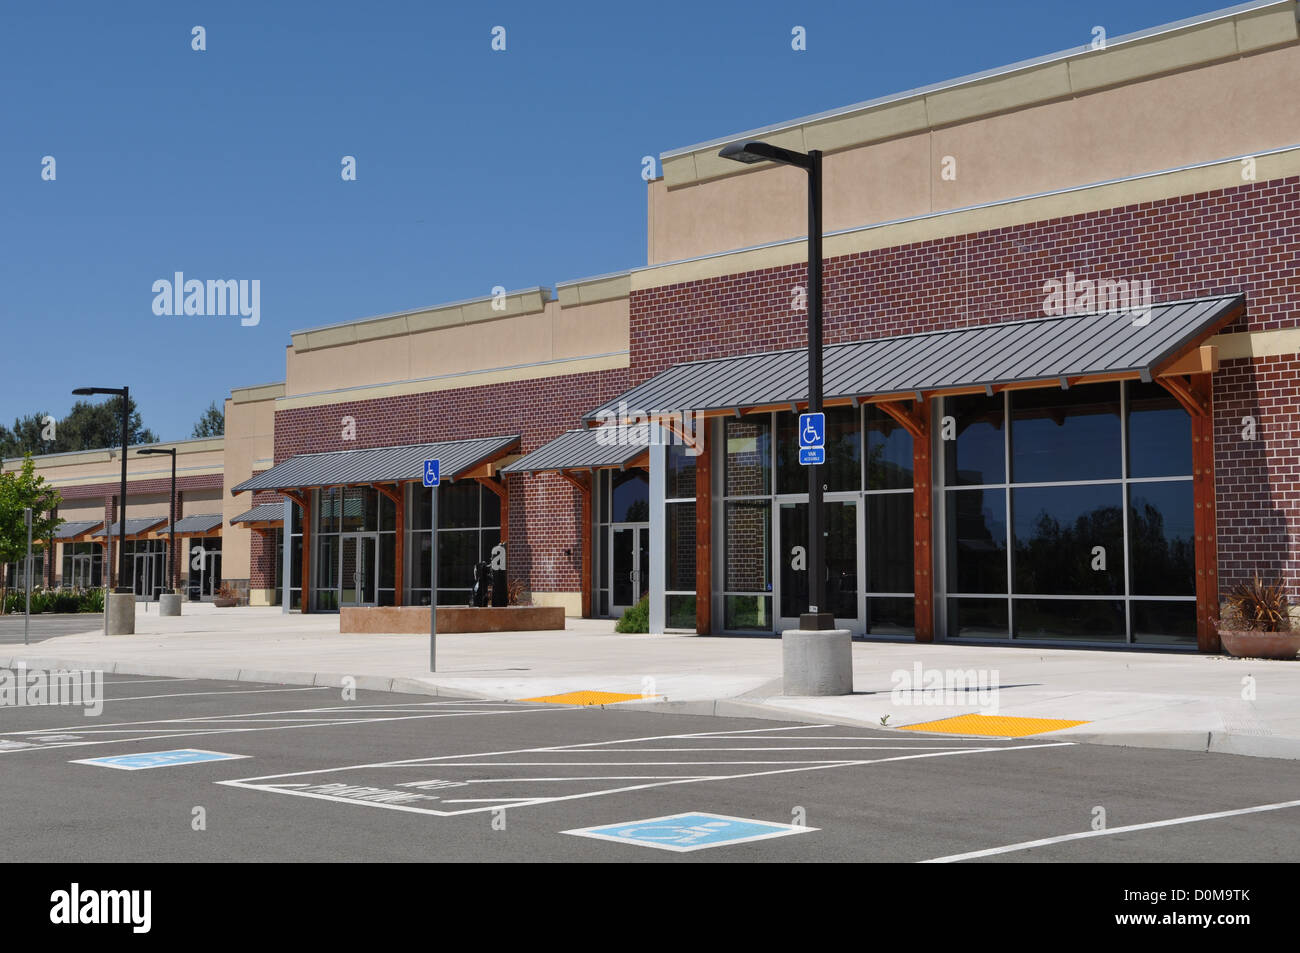 Strip Mall Shopping Center Parking Lot - Stock Image